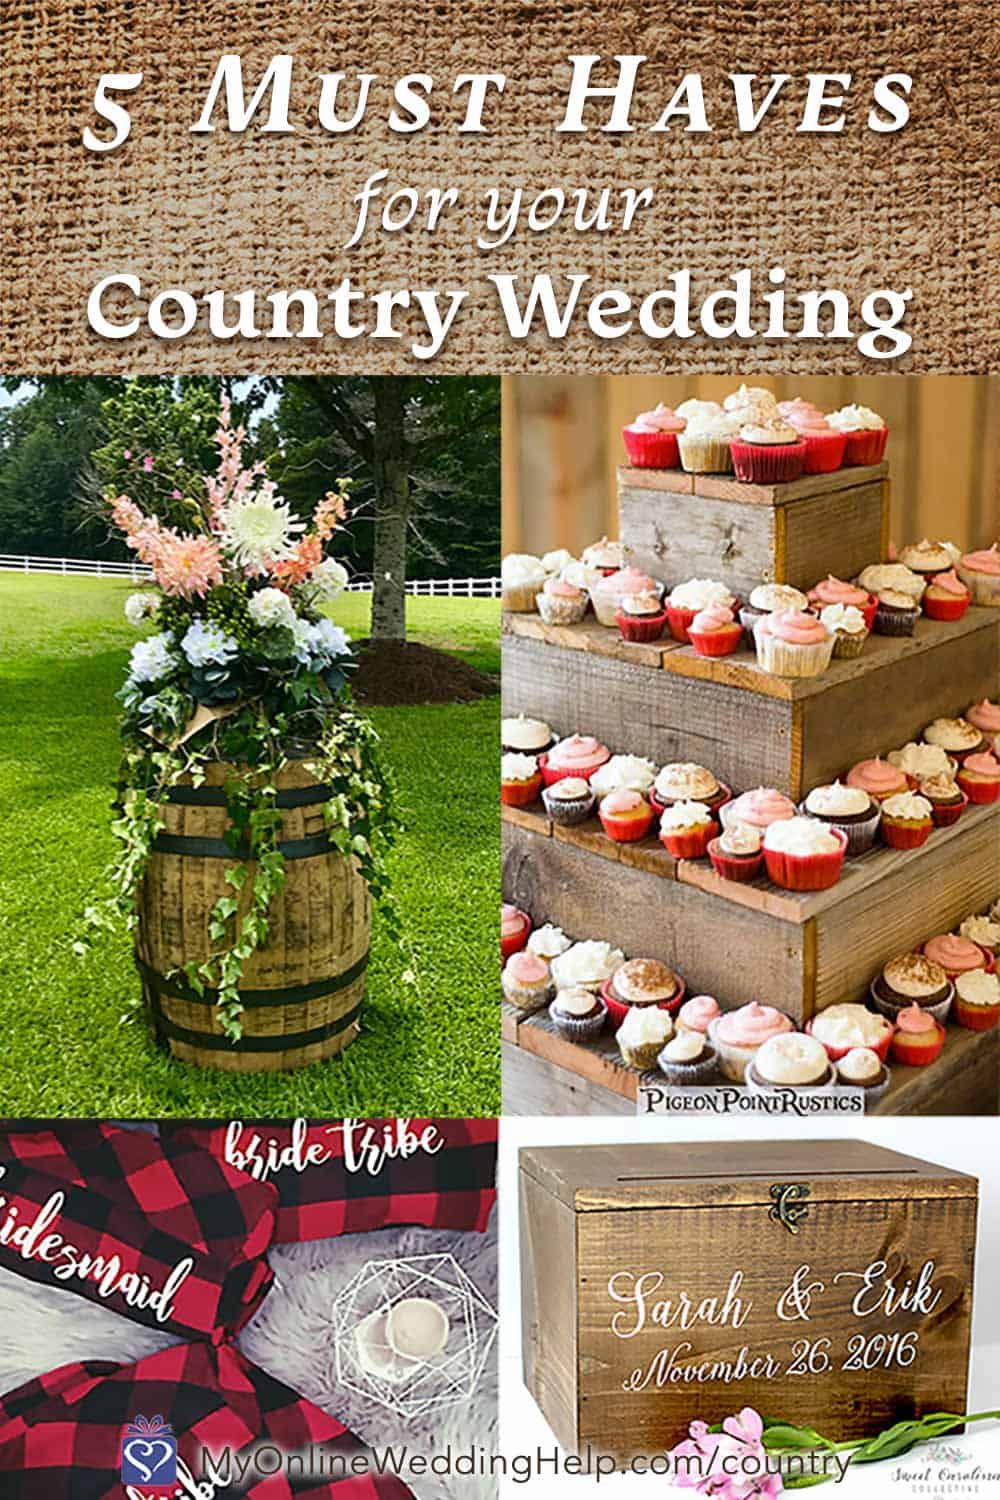 5 Must Haves for Your Country Wedding - My Online Wedding Help. Wedding  Planning Tips & Tools